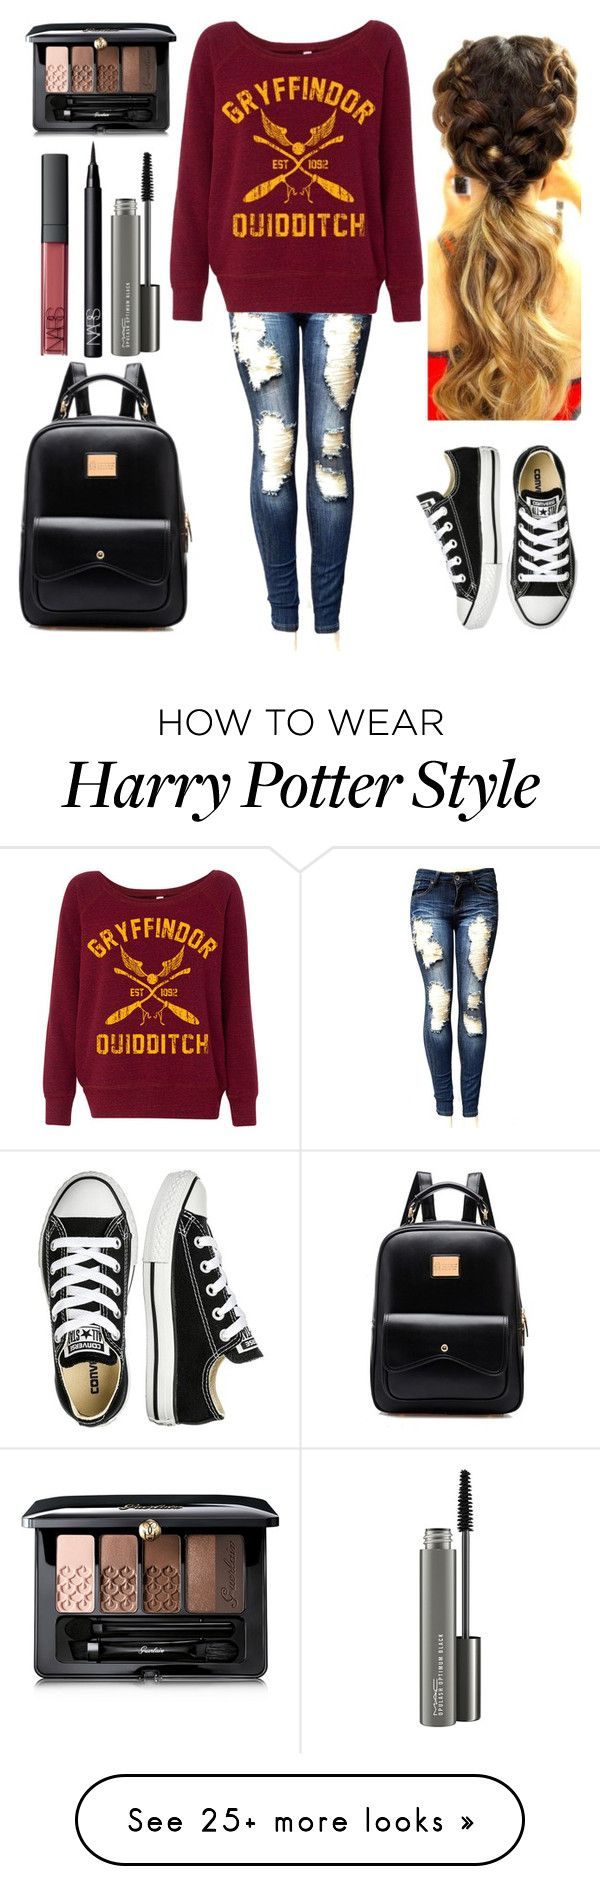 """For fashionista-gurl-1"" by harrypotter-gurl on Polyvore featuring Converse, MAC Cosmetics, NARS Cosmetics and Guerlain"